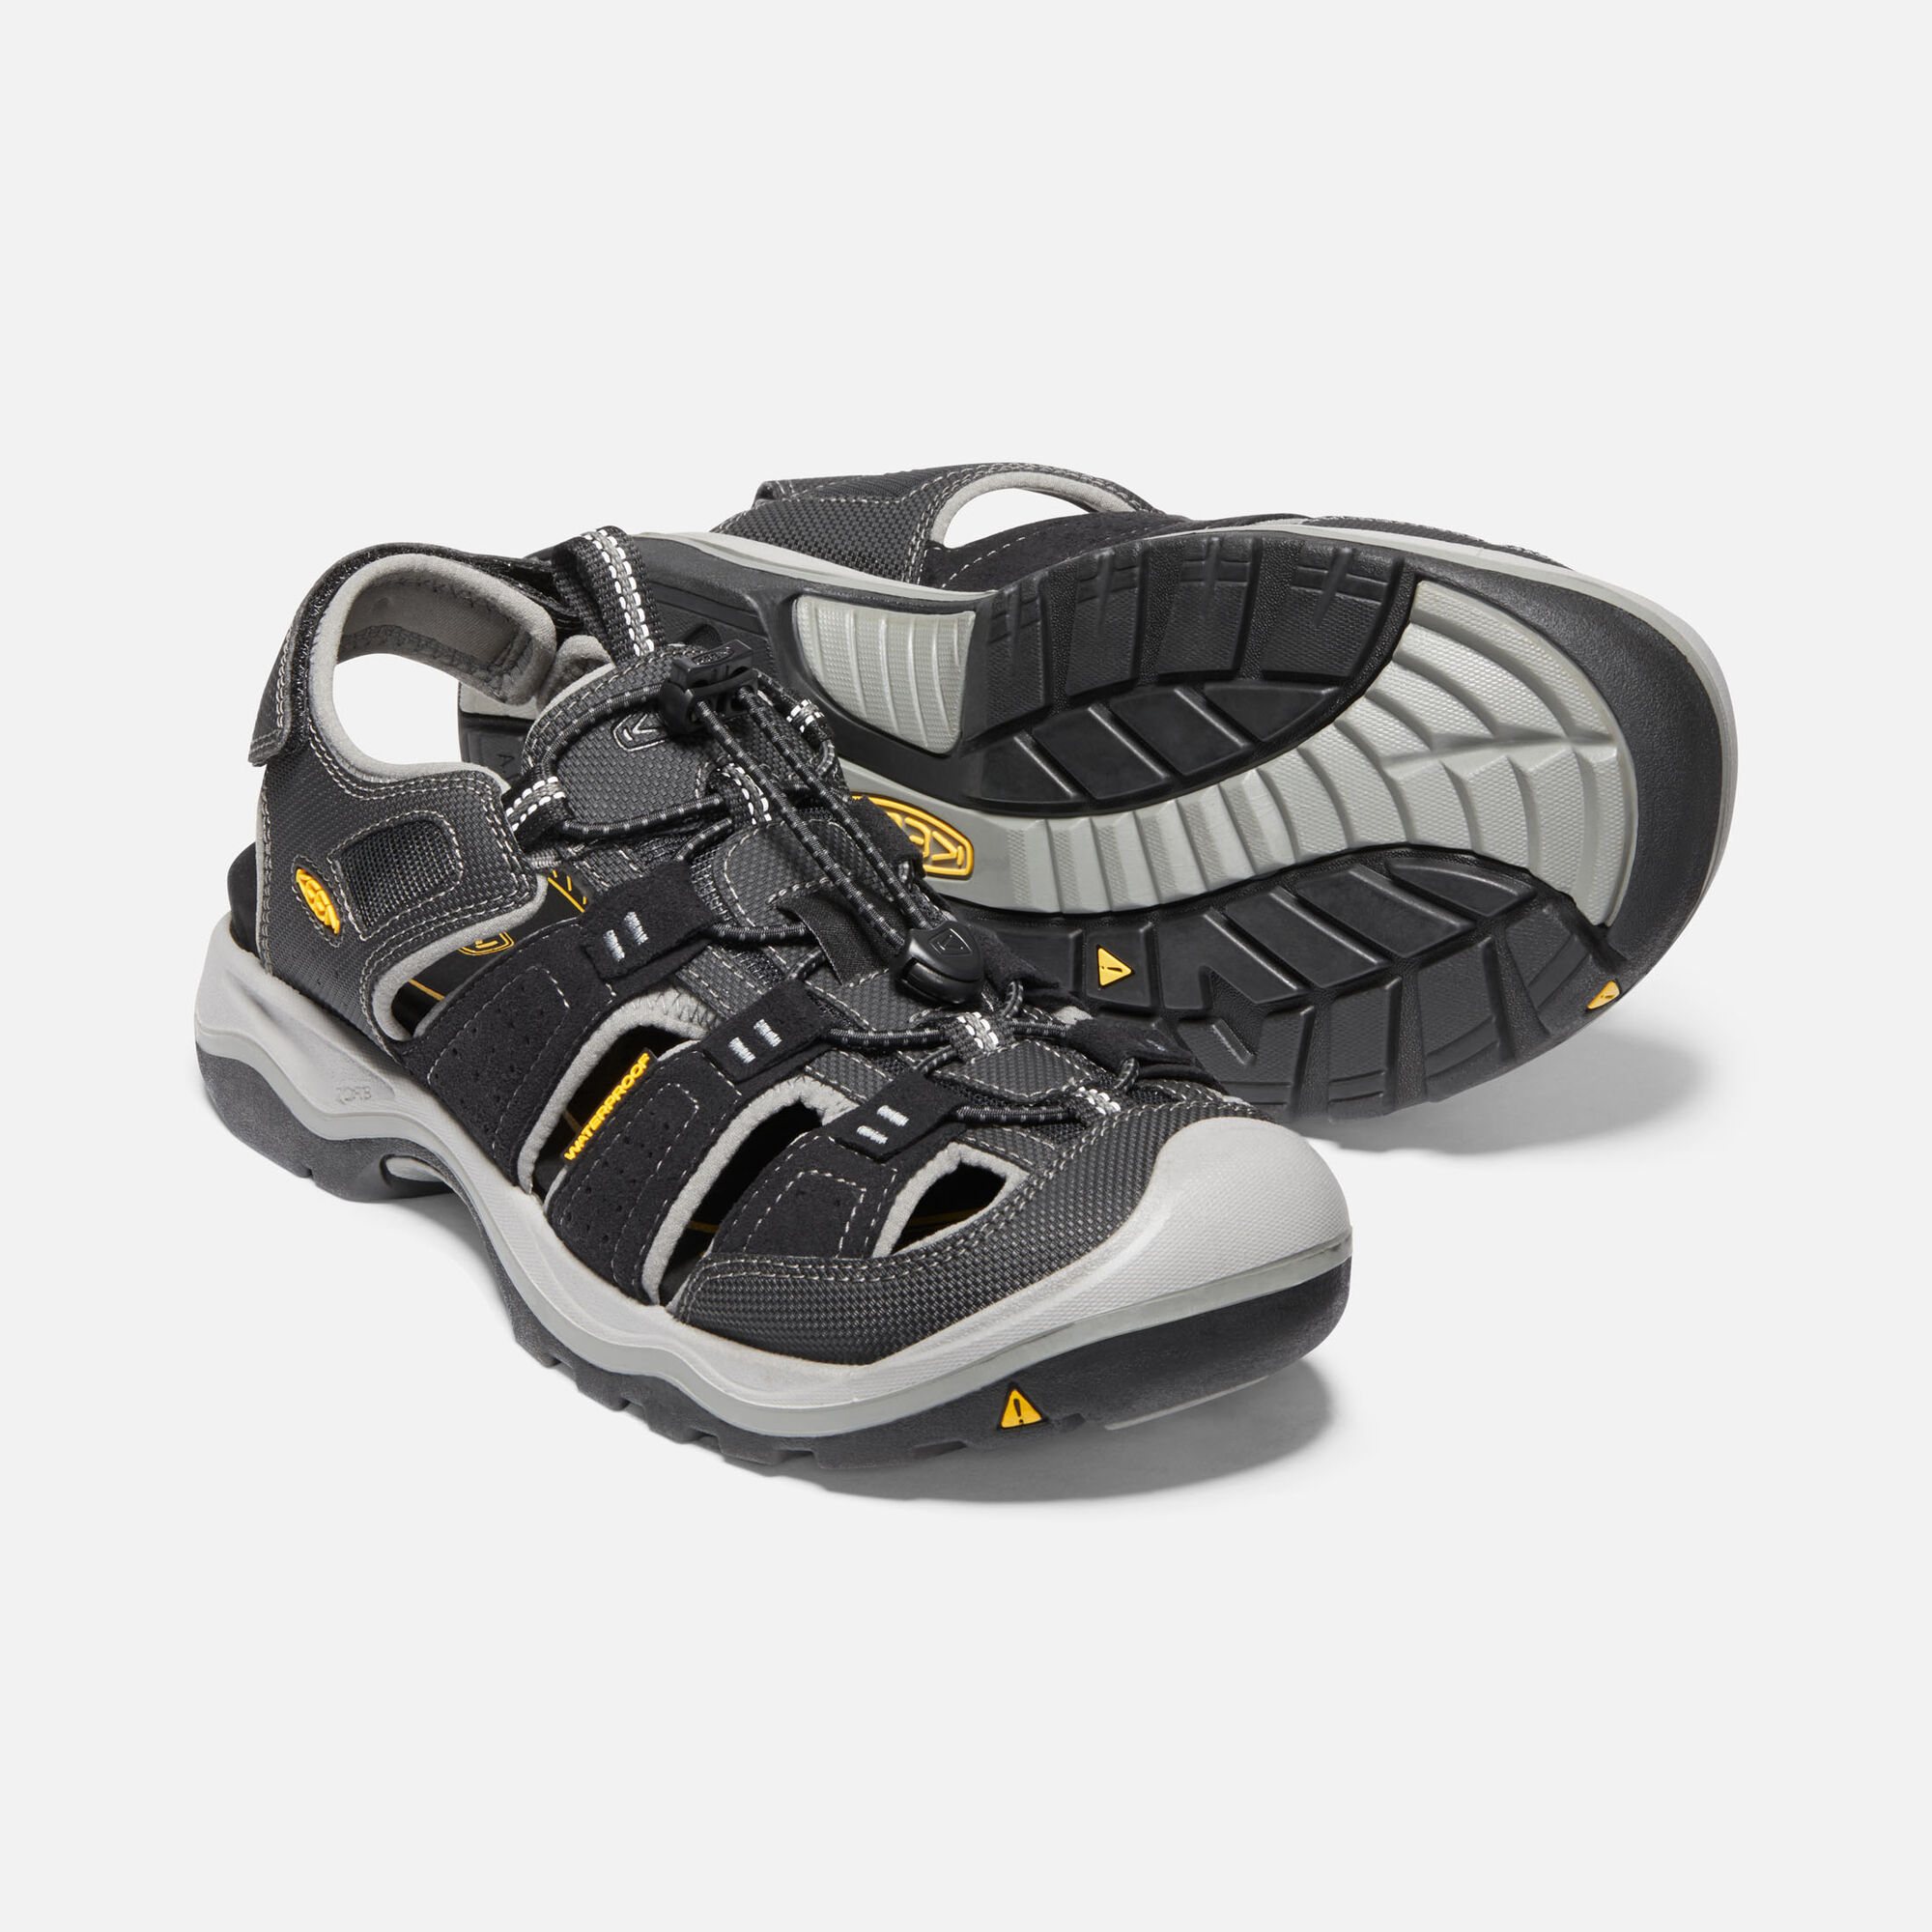 6045c9560f9e Men s Rialto II H2 - Men s Hiking Sandals With Bungee Laces